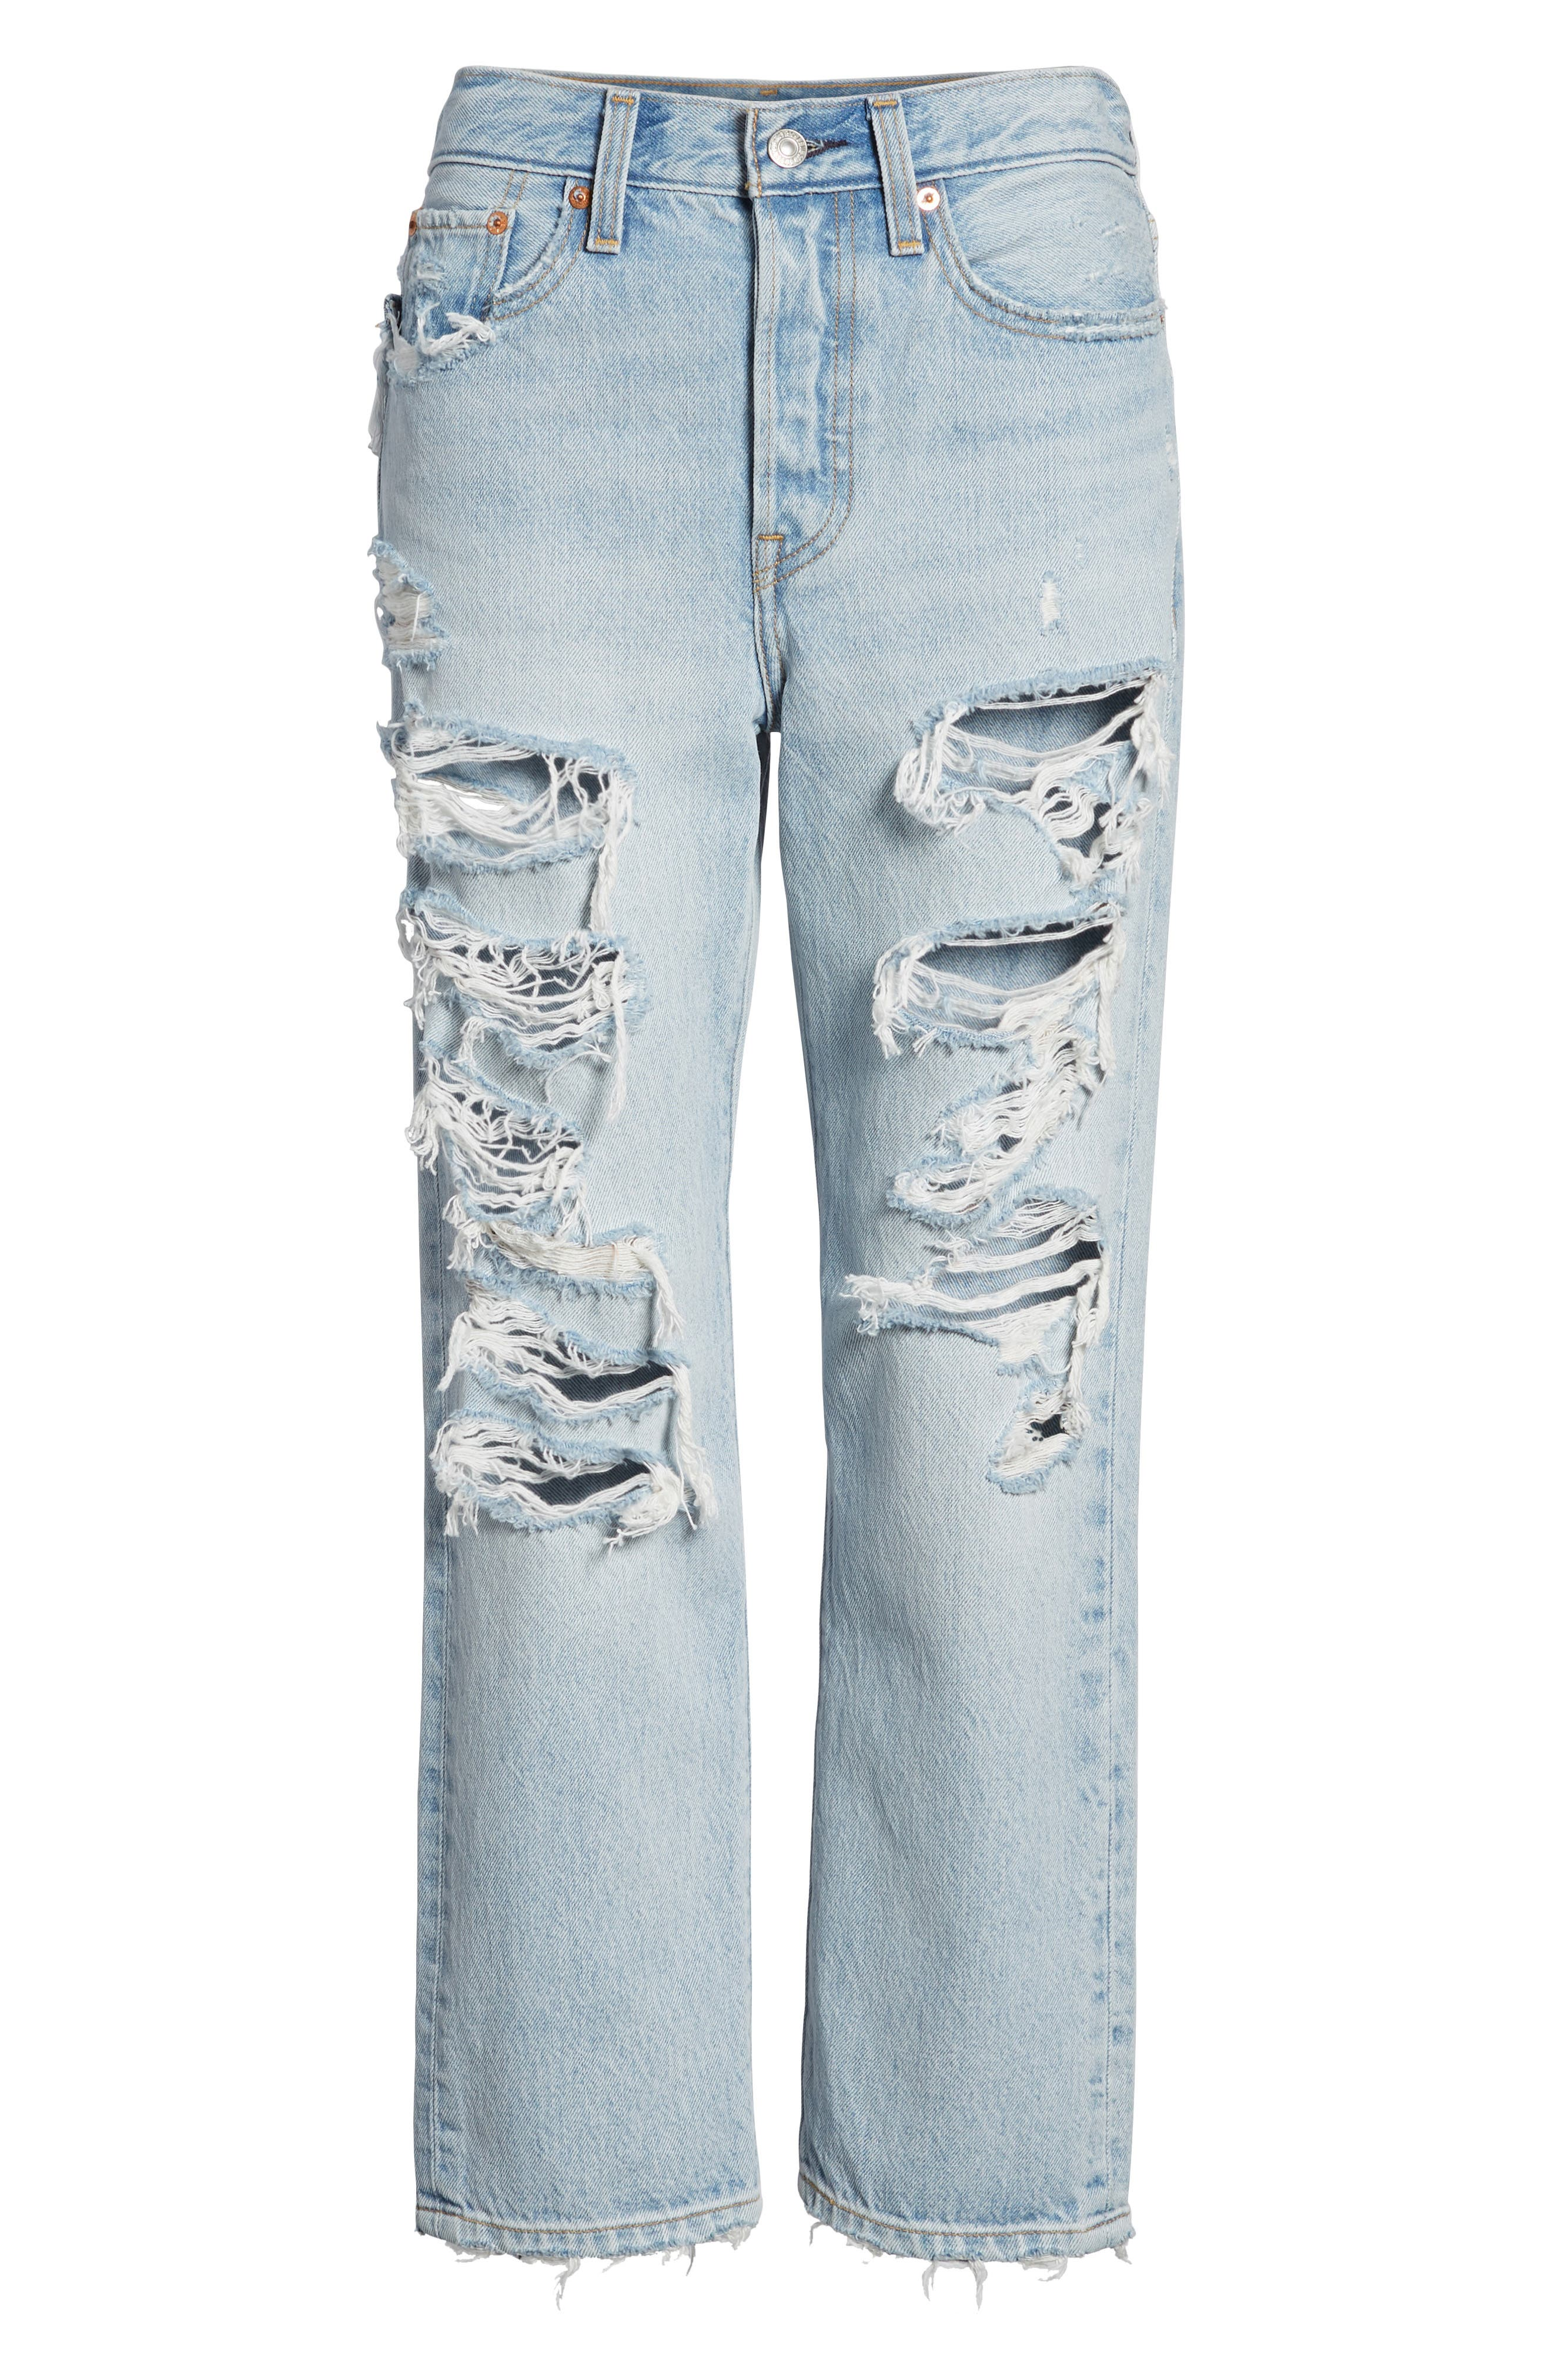 Wedgie High Waist Ripped Straight Jeans,                             Alternate thumbnail 7, color,